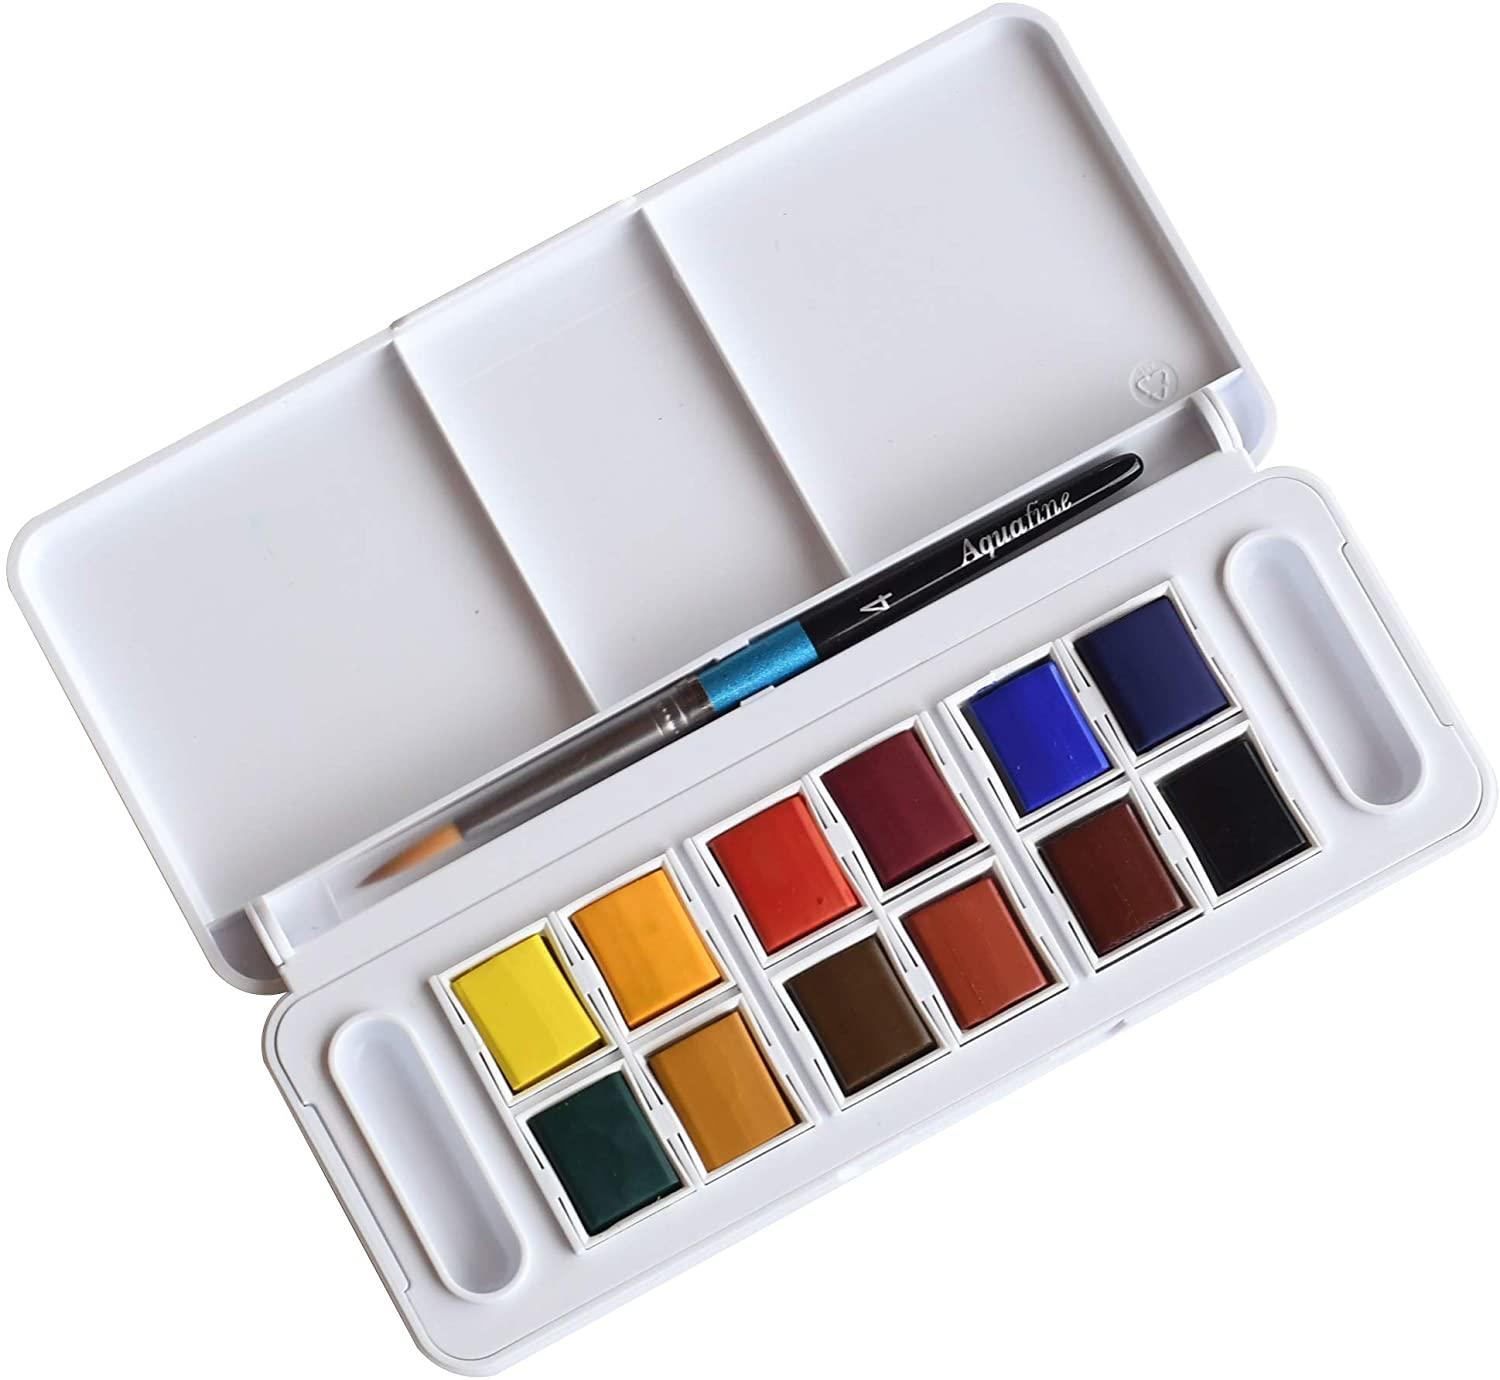 interior of the Daler Rowney Aquafine watercolour box